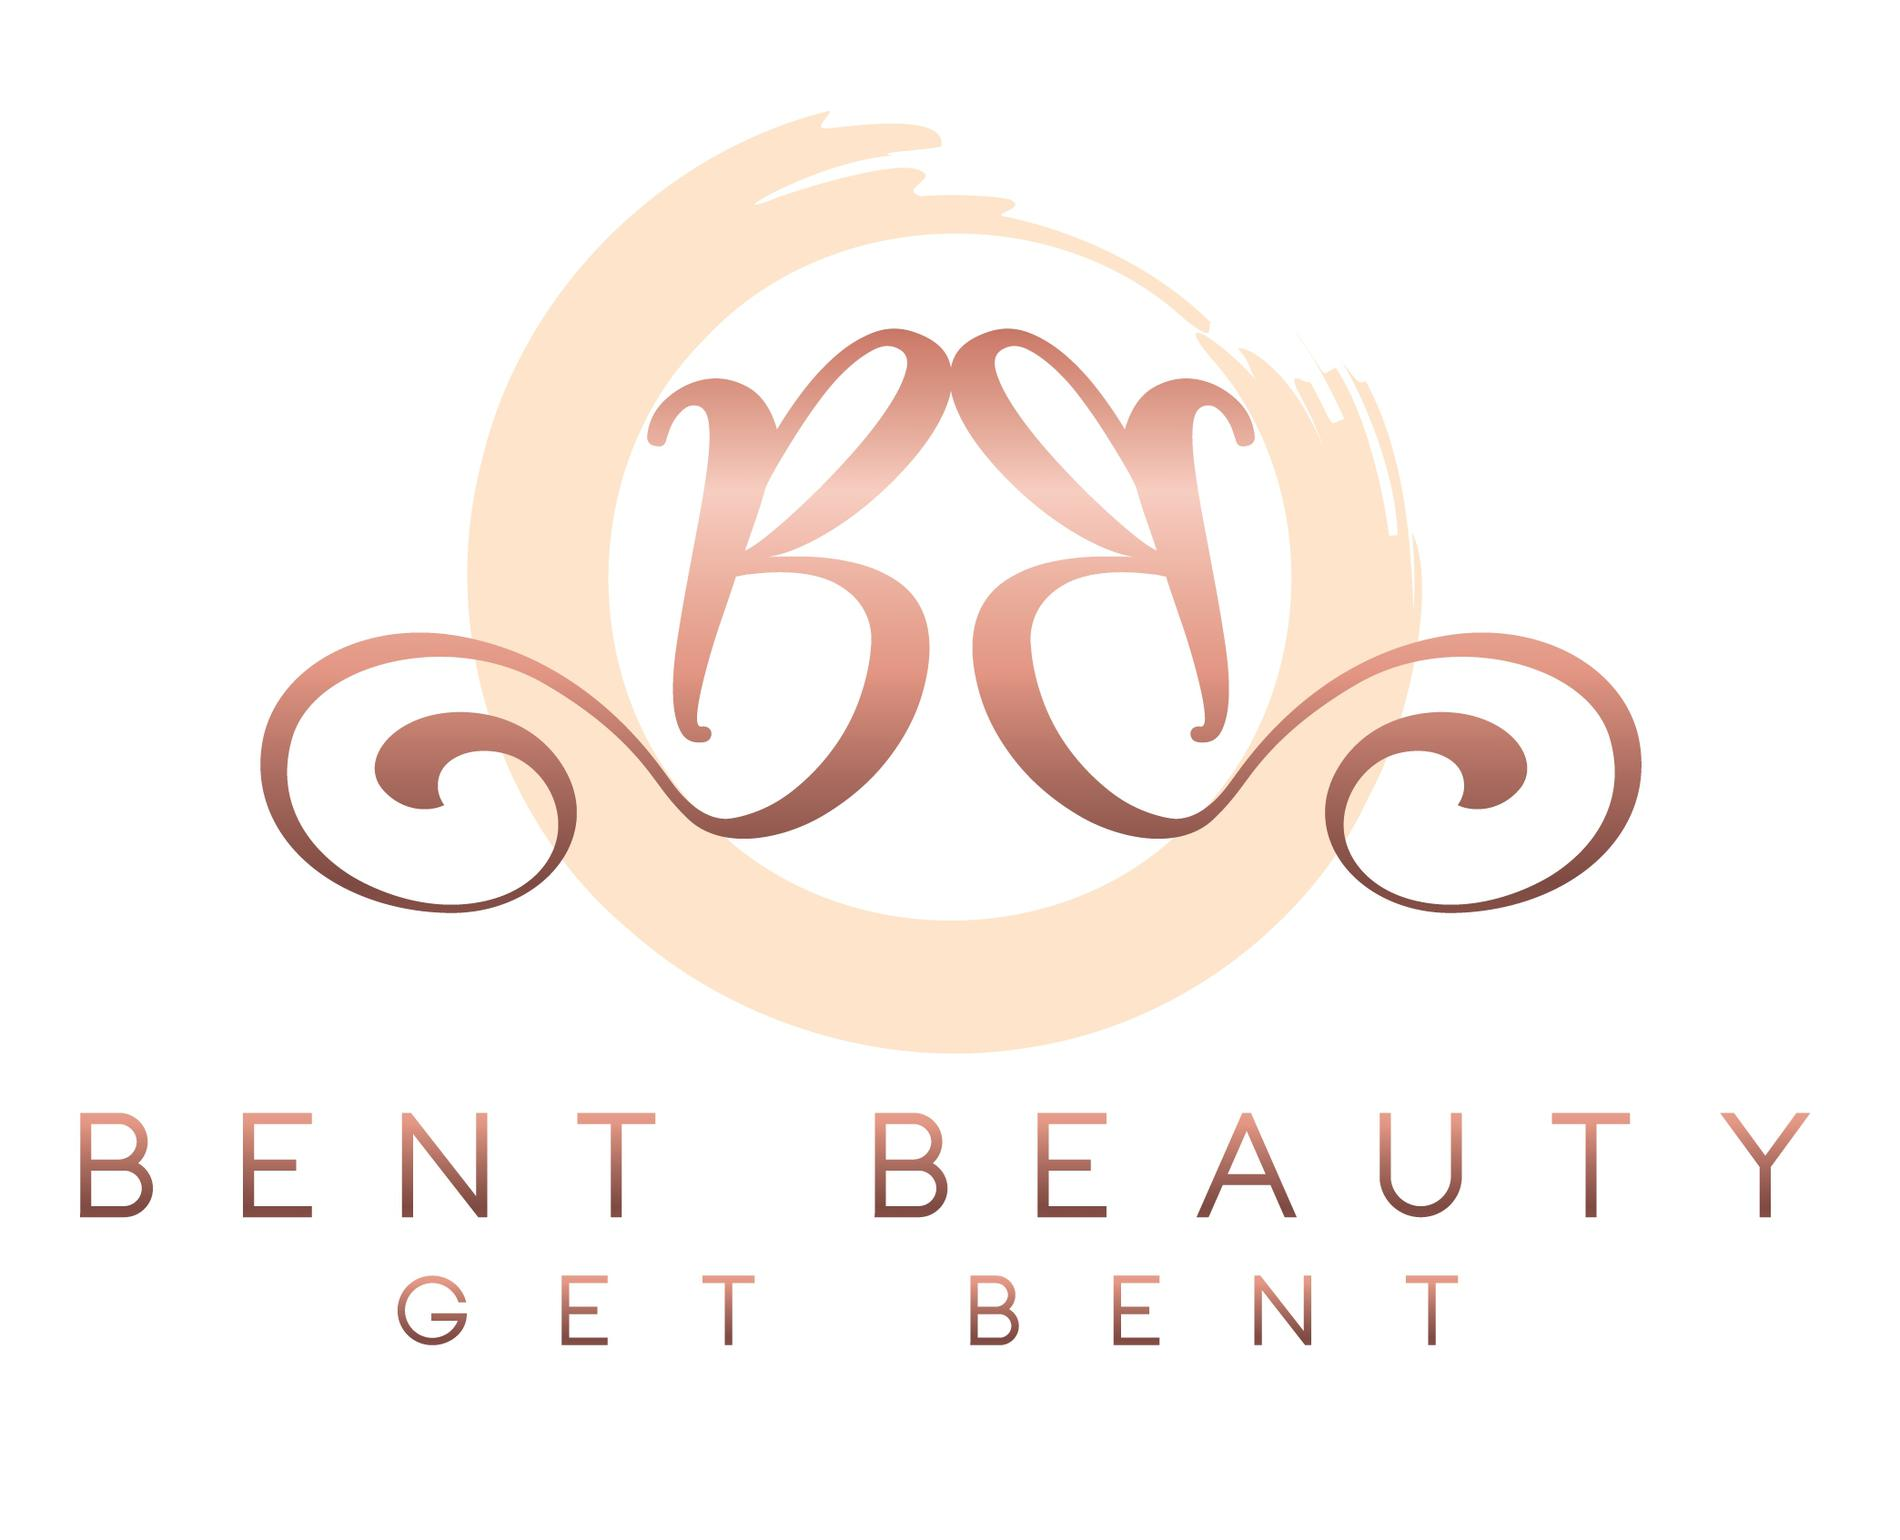 About Bent Beauty